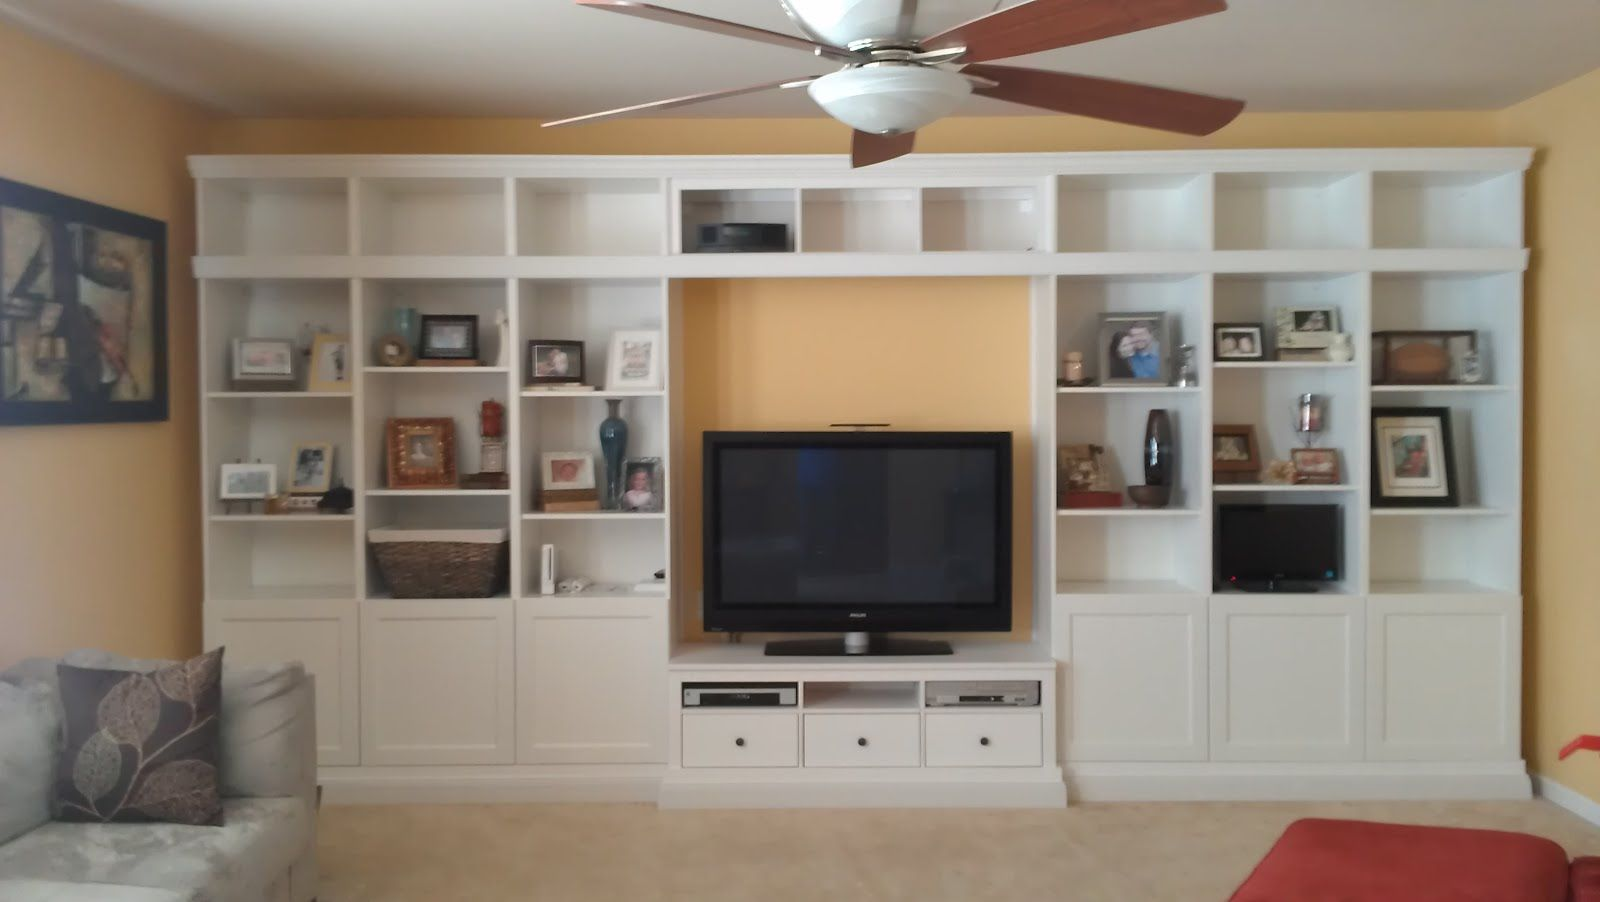 Built In Wall Shelves Hemnes Wall Unit Google Search Moms Home Pinterest Hemnes